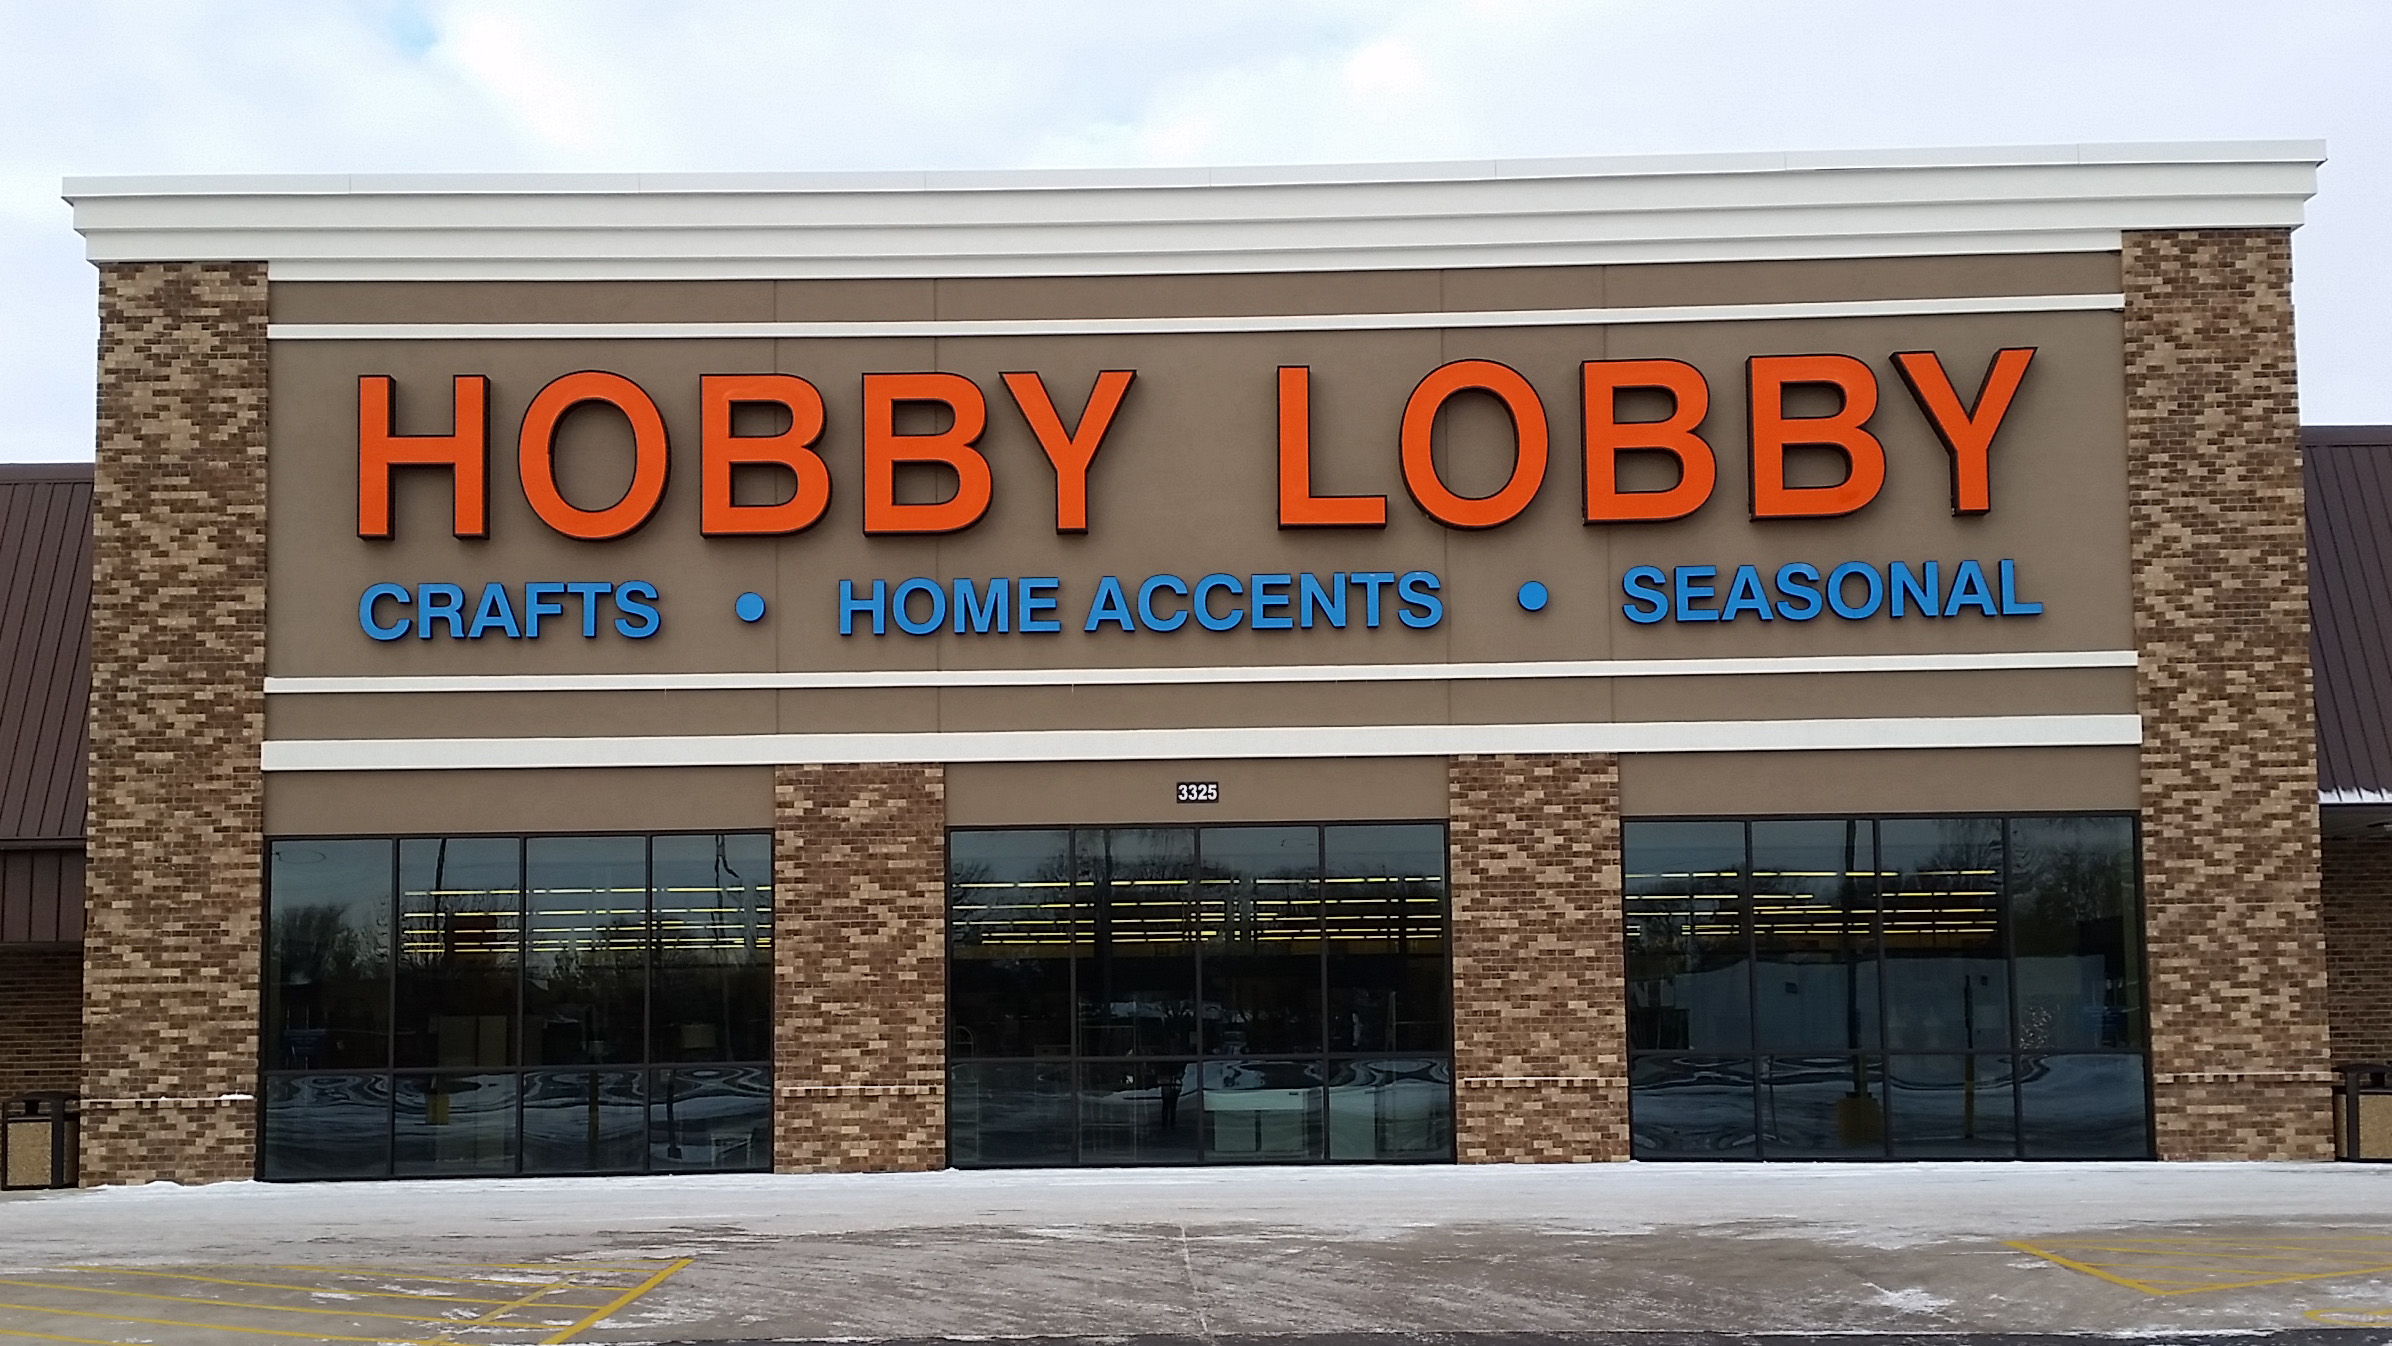 Hobby lobby 3325 s veterans pkwy springfield il 62704 yp jeuxipadfo Image collections